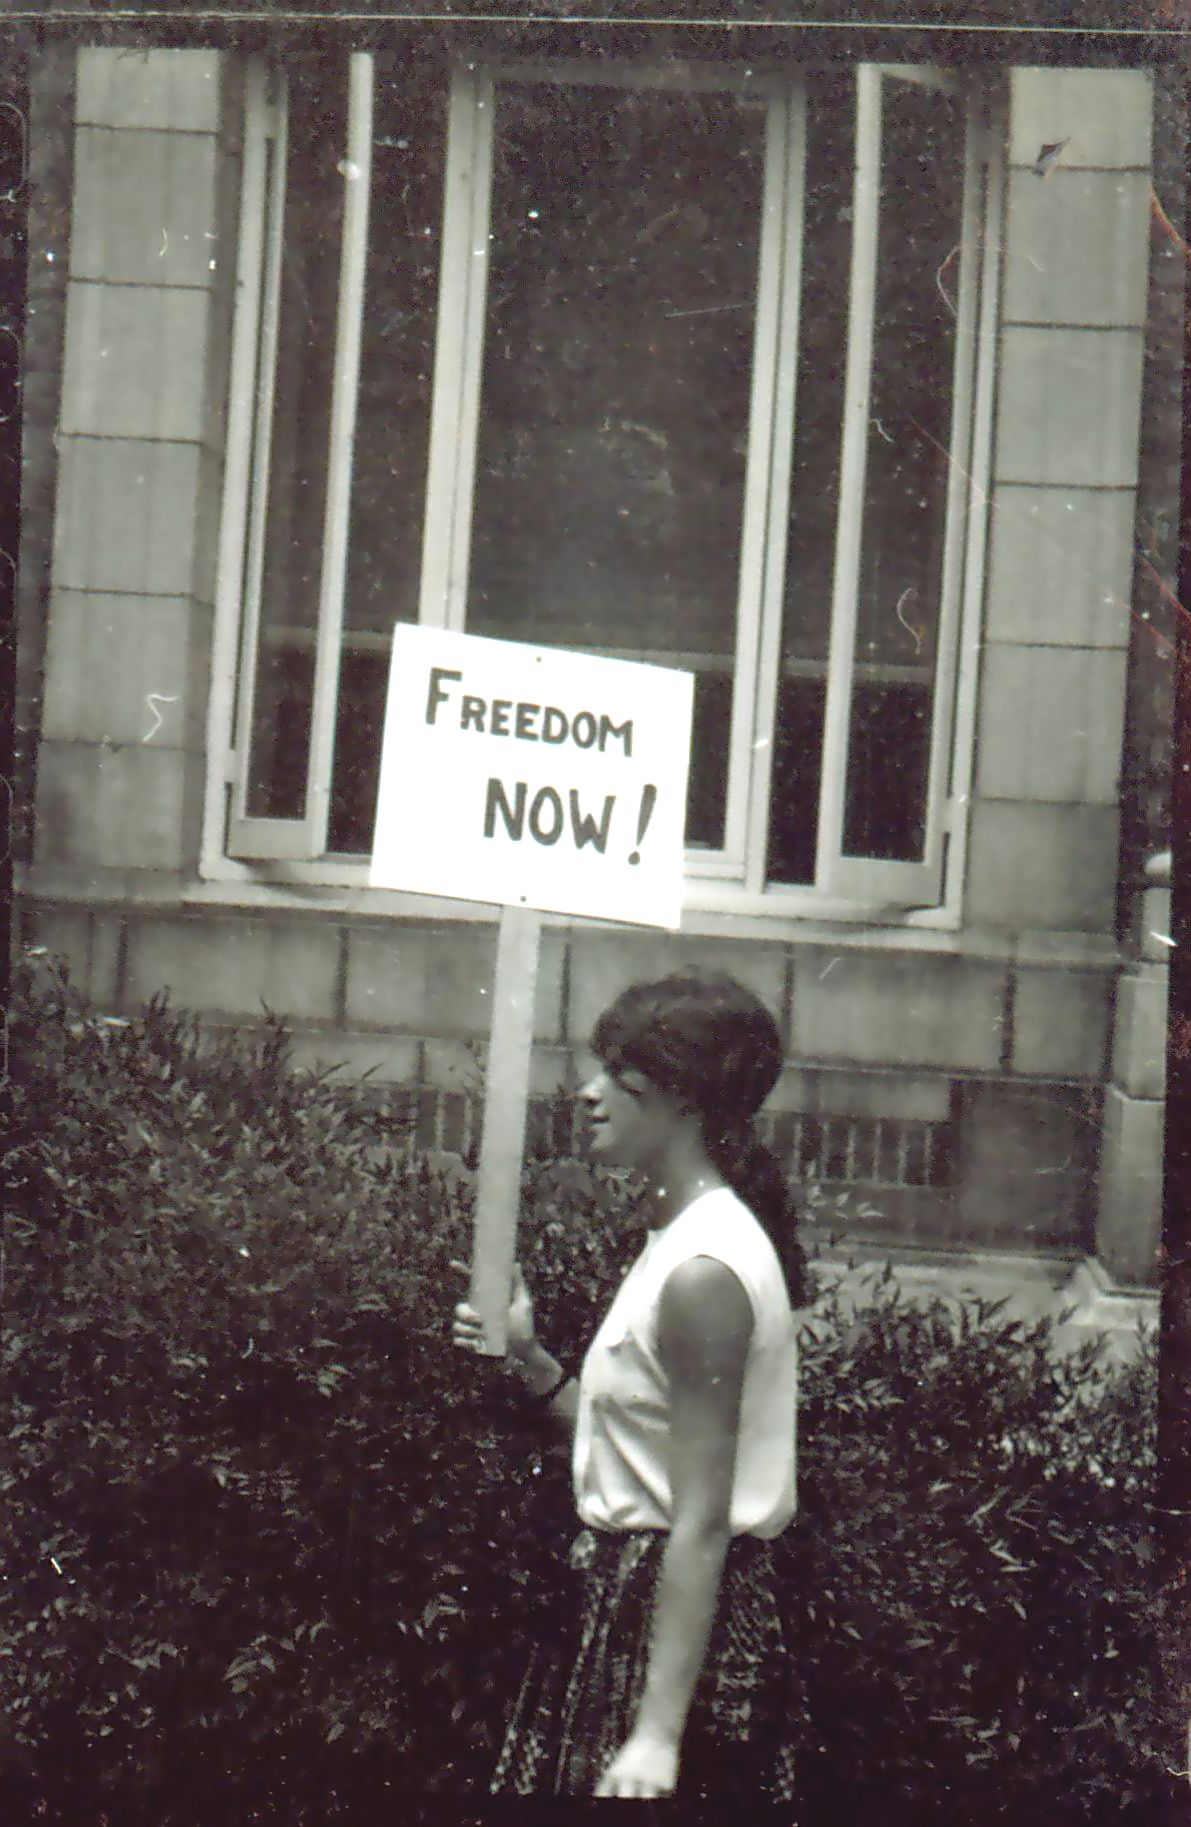 Heather-picketing-with-sign.jpg